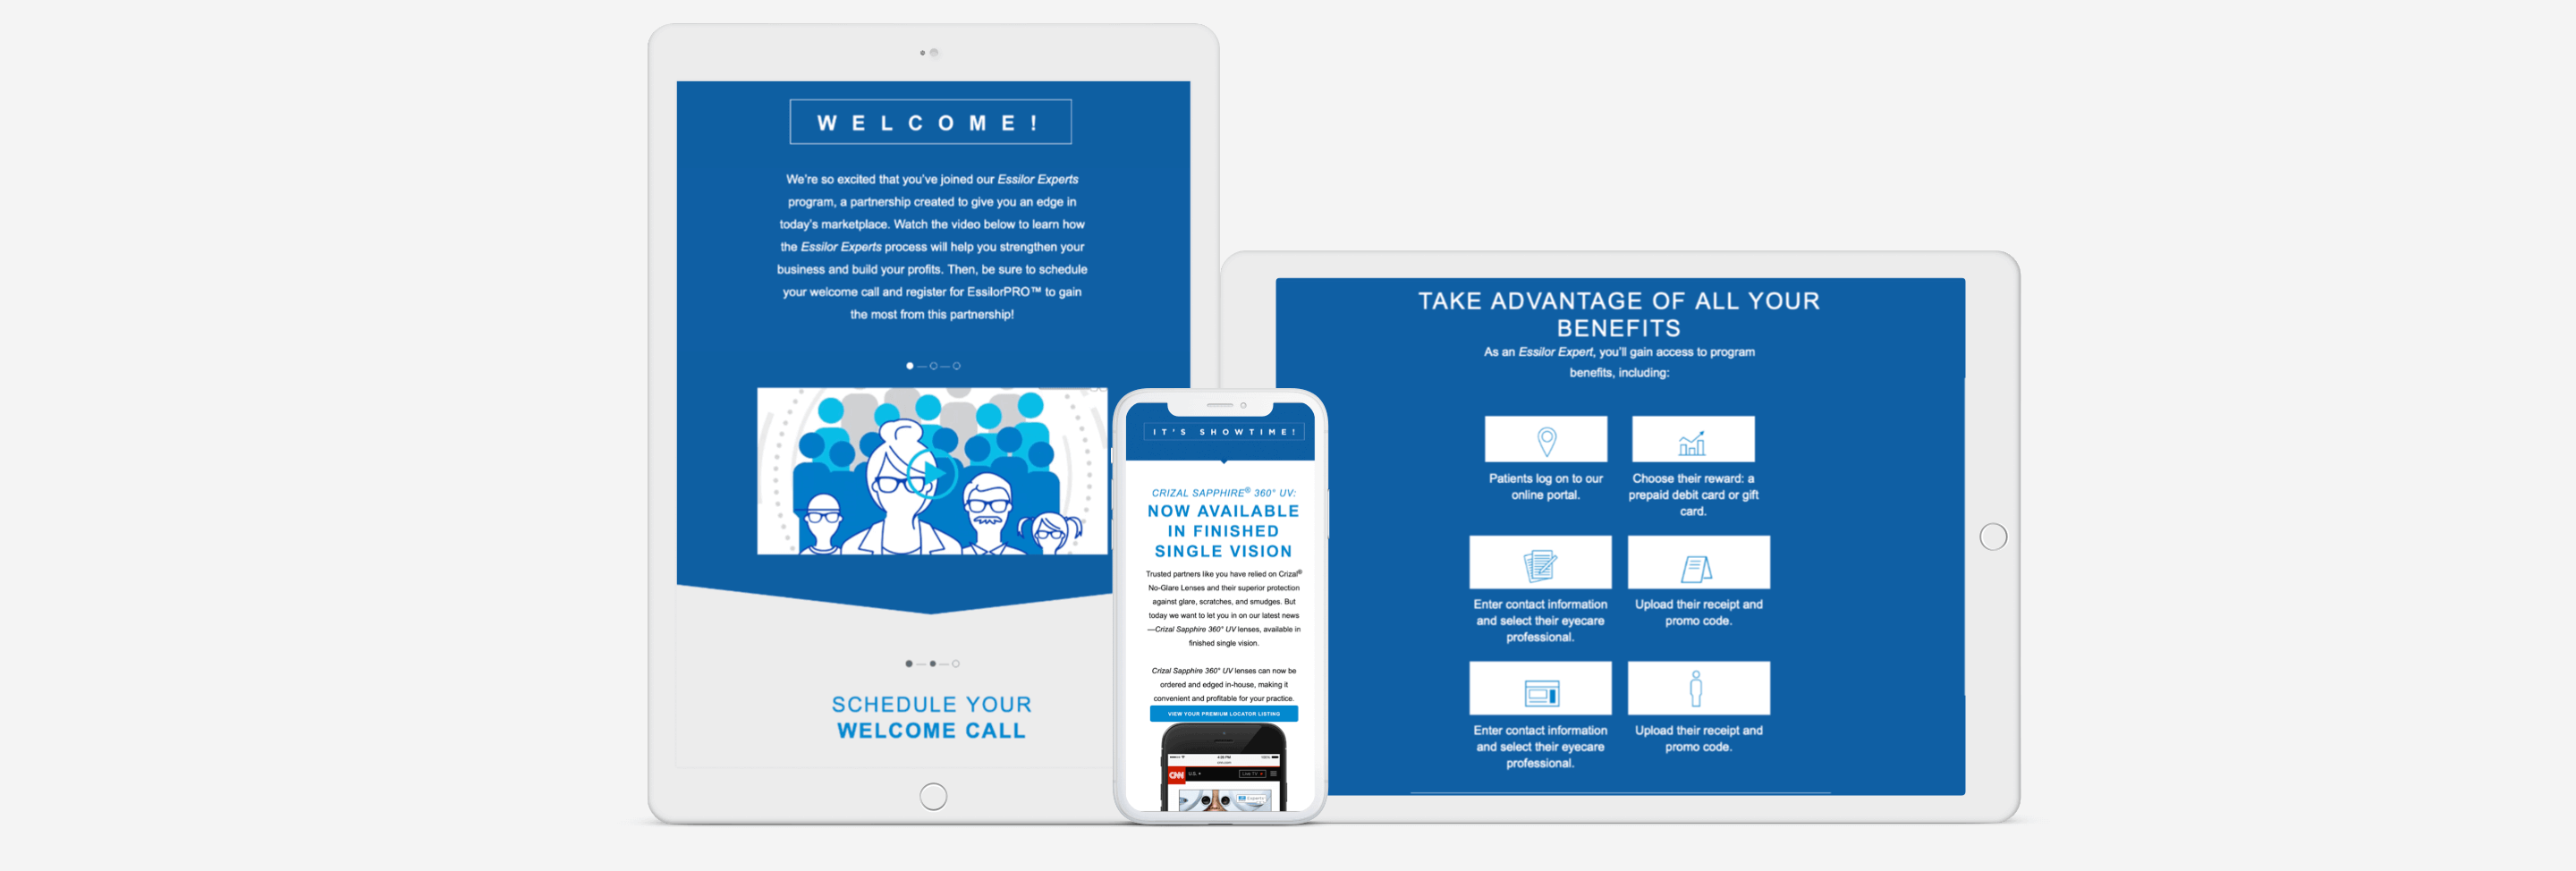 Responsive email marketing templates for Essilor by ArcTouch